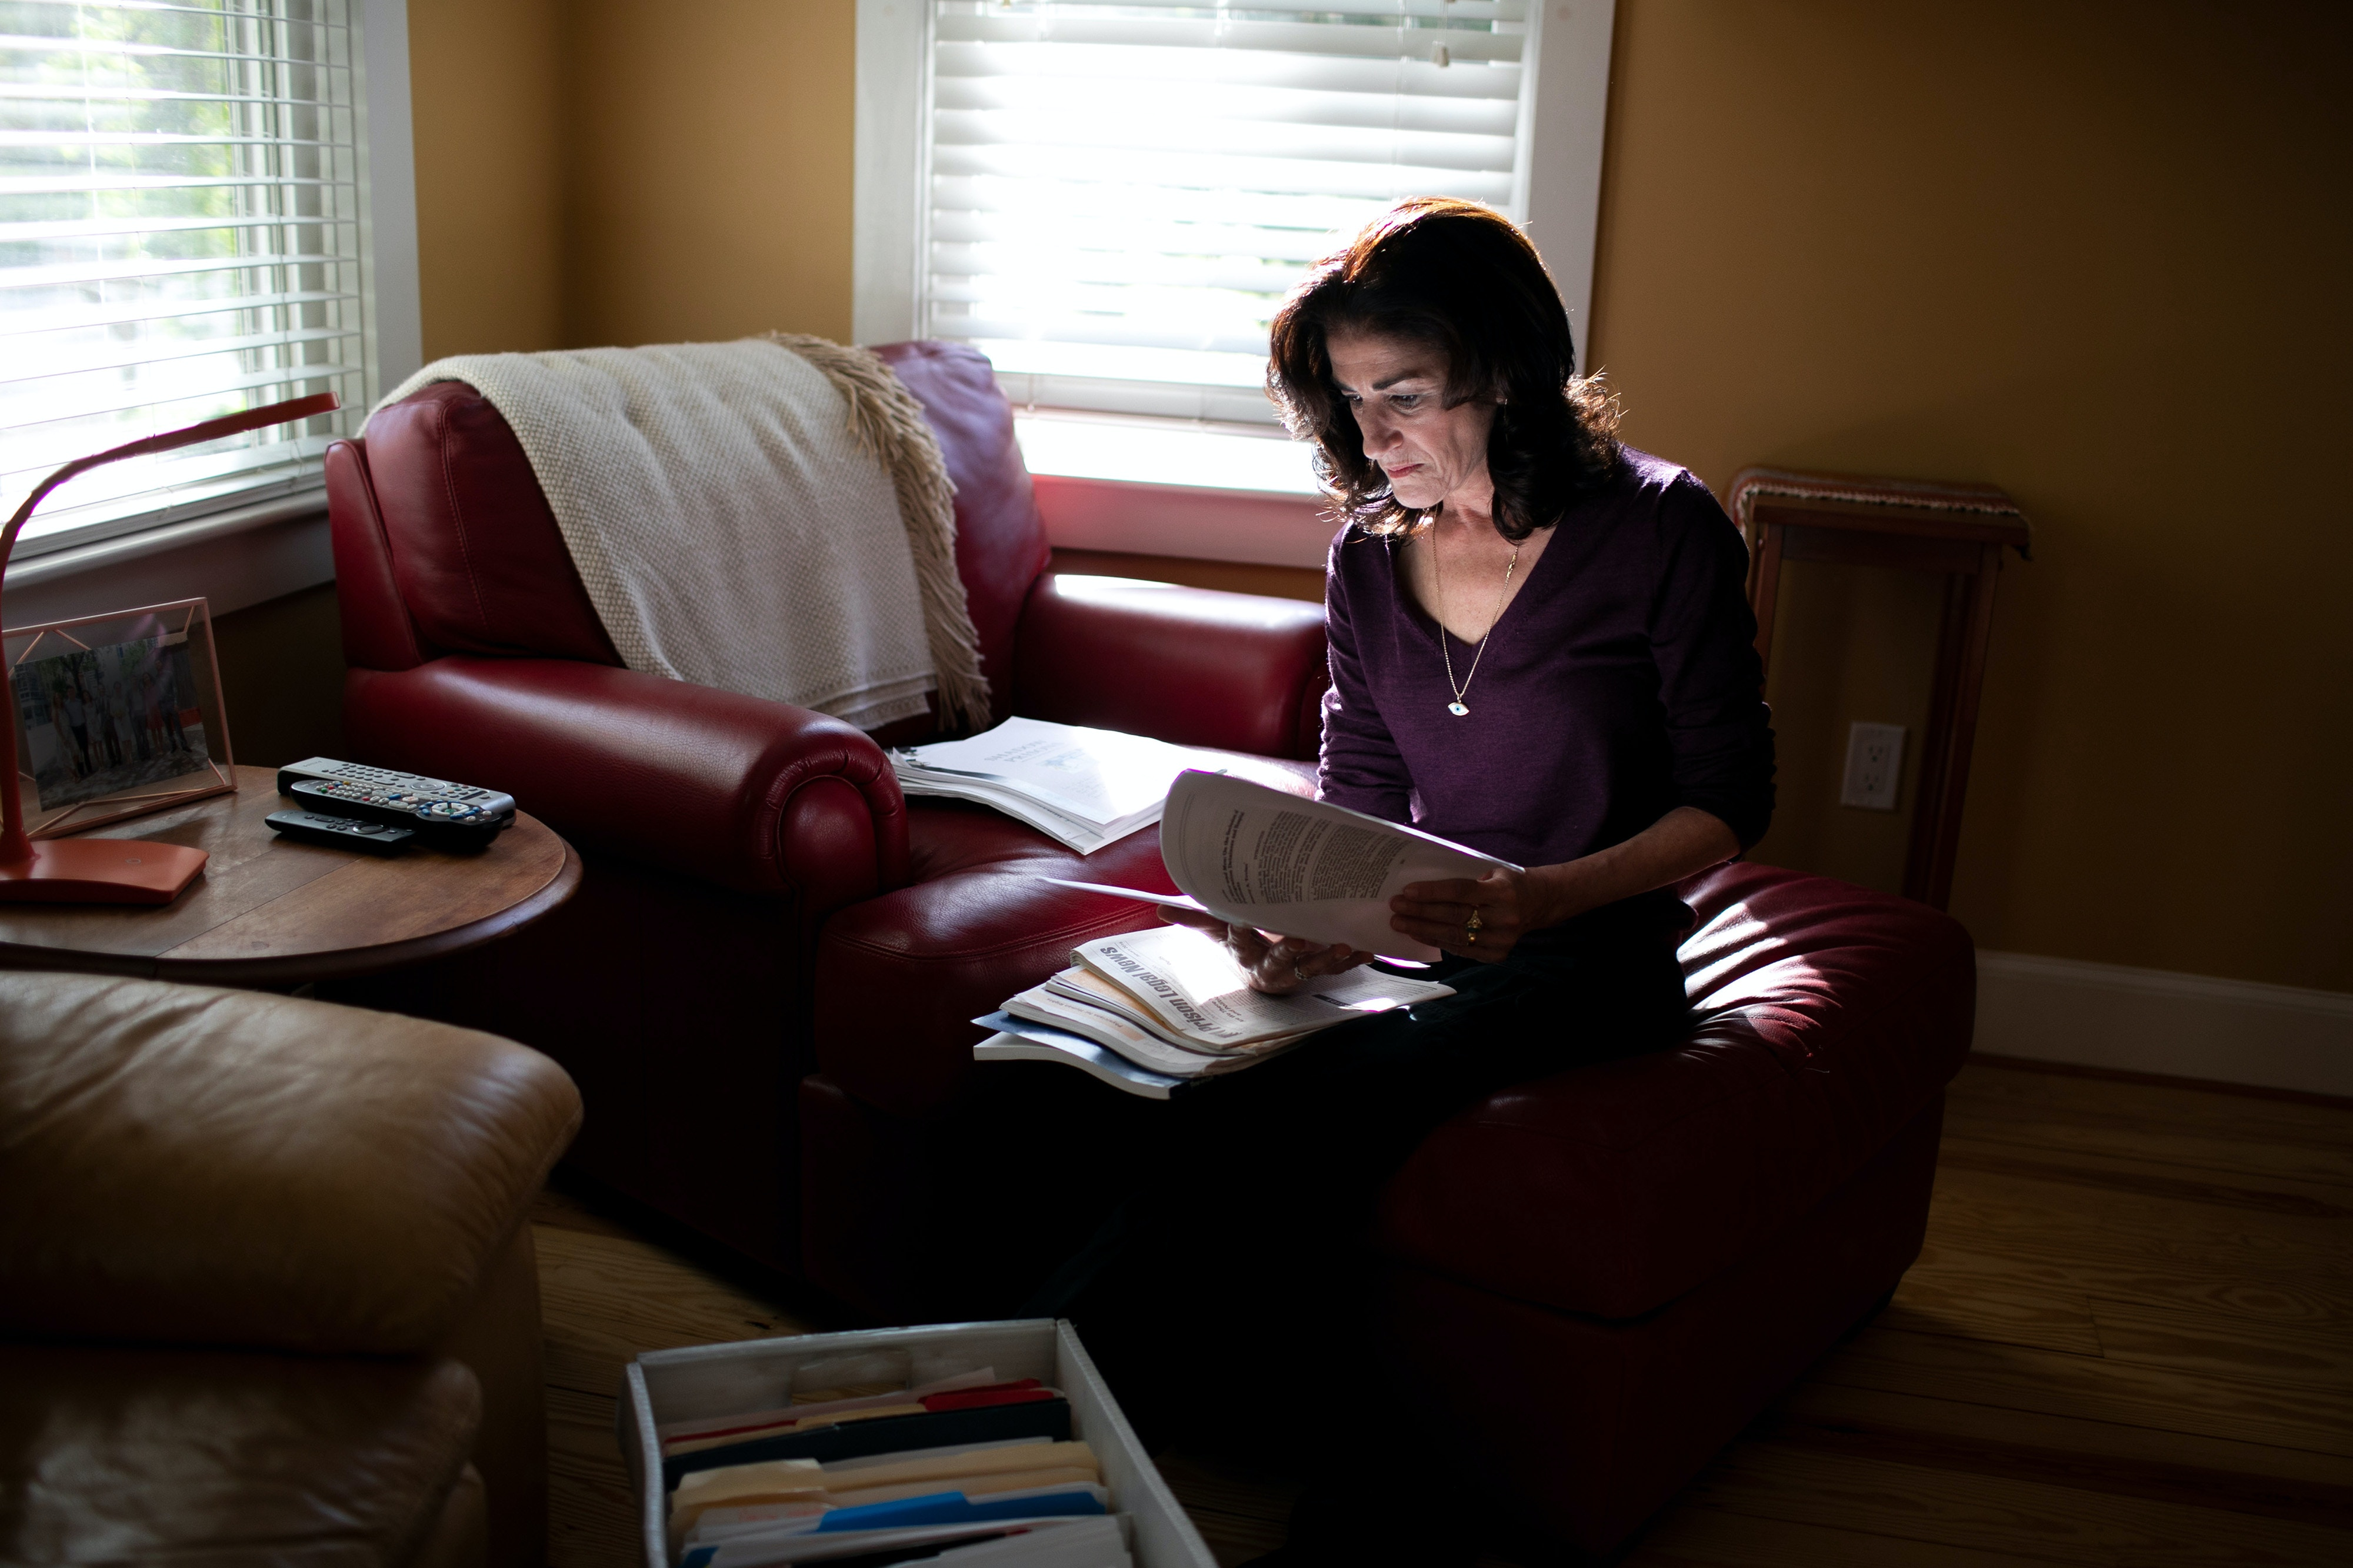 Mansfield, MA -- 05/08/2019 -- Ellen Gallagher looks through information about solitary confinement in her home office on May 8, 2019, in Mansfield, Massachusetts. This is part of a collection of information that she researched and used during the process of trying to understand the scope of the use of solitary confinement in immigration detention. (Kayana Szymczak for The Intercept)